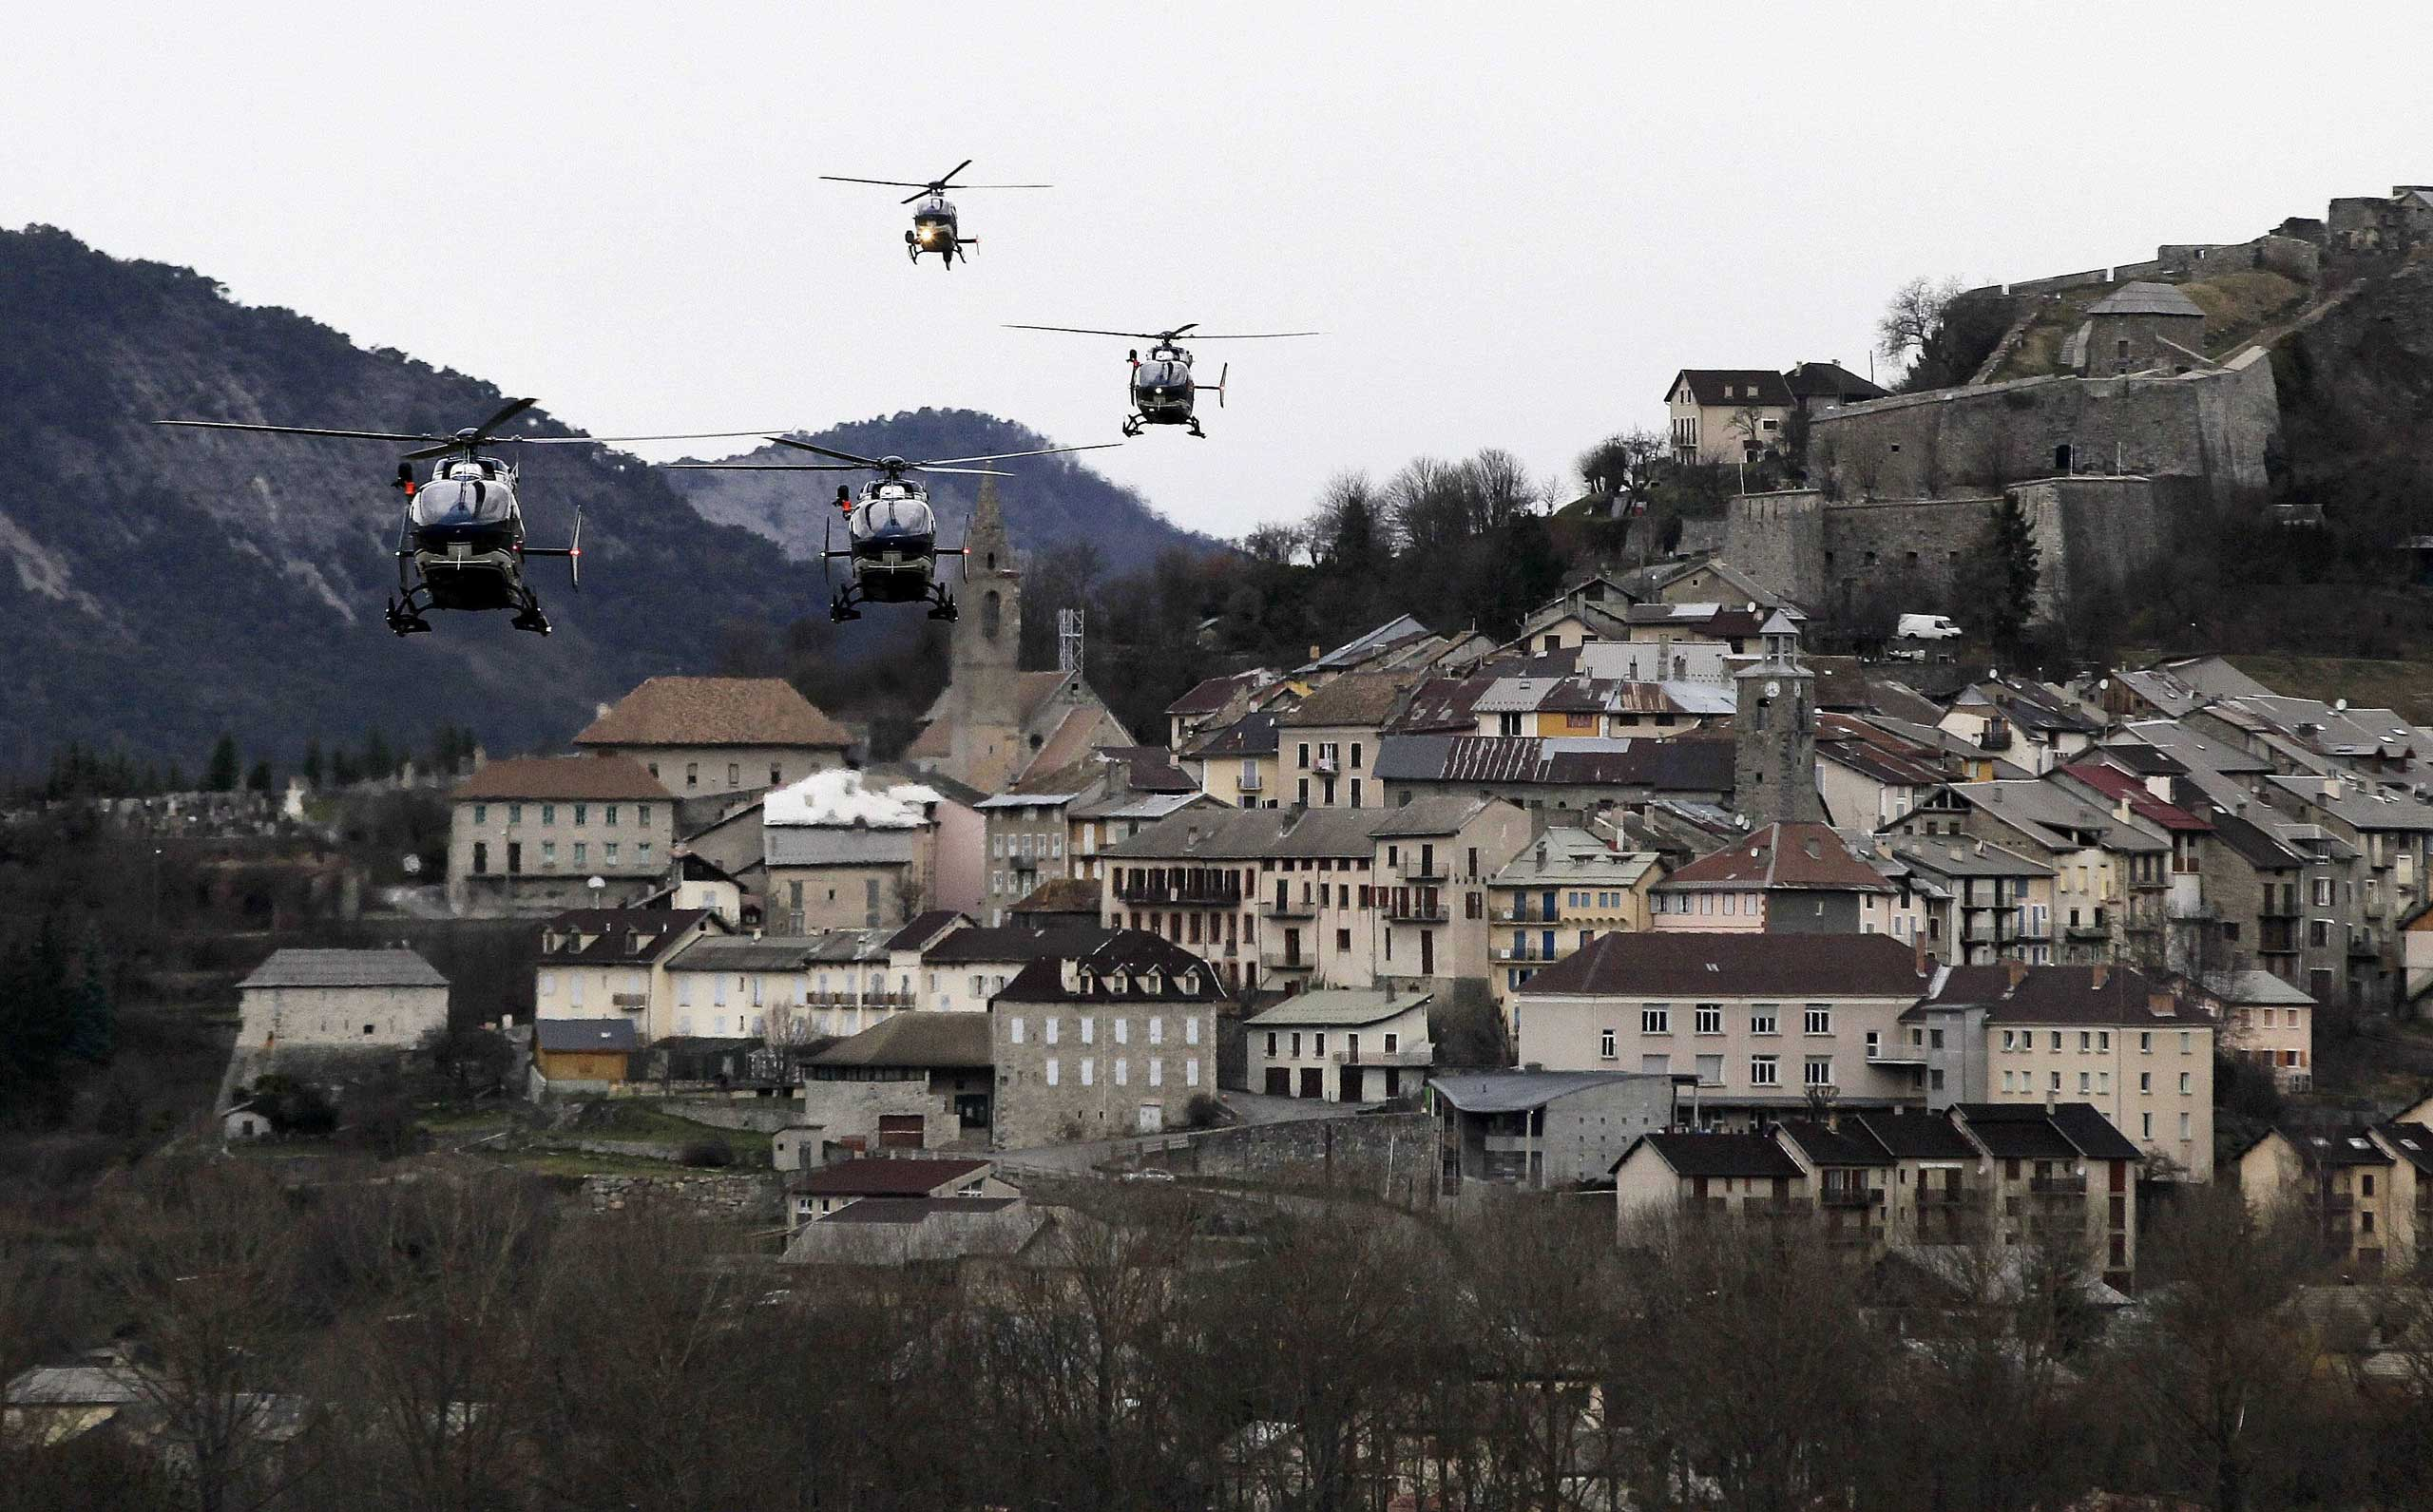 Helicopters of the French gendarmerie and emergency services fly over Seyne-les-Alpes as they resume works to recover the bodies and the remains of the Airbus A320 that crashed the previous day in the Alps, March 25, 2015.